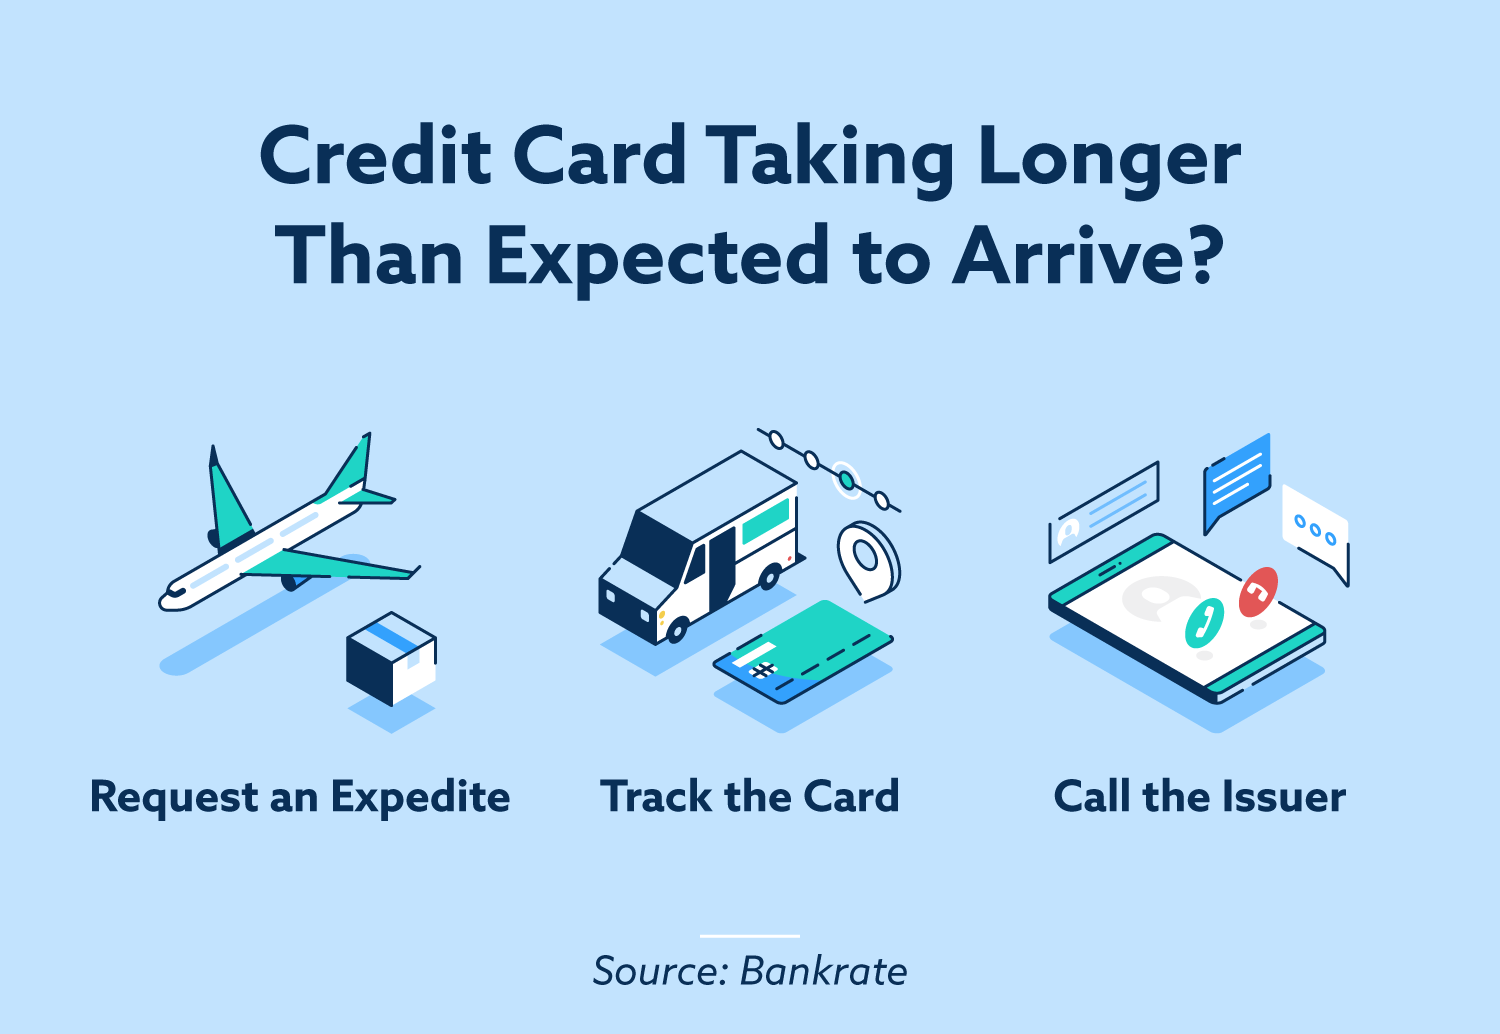 Credit card taking longer than expected to arrive? Request an expedite, track the card, call the issuer.